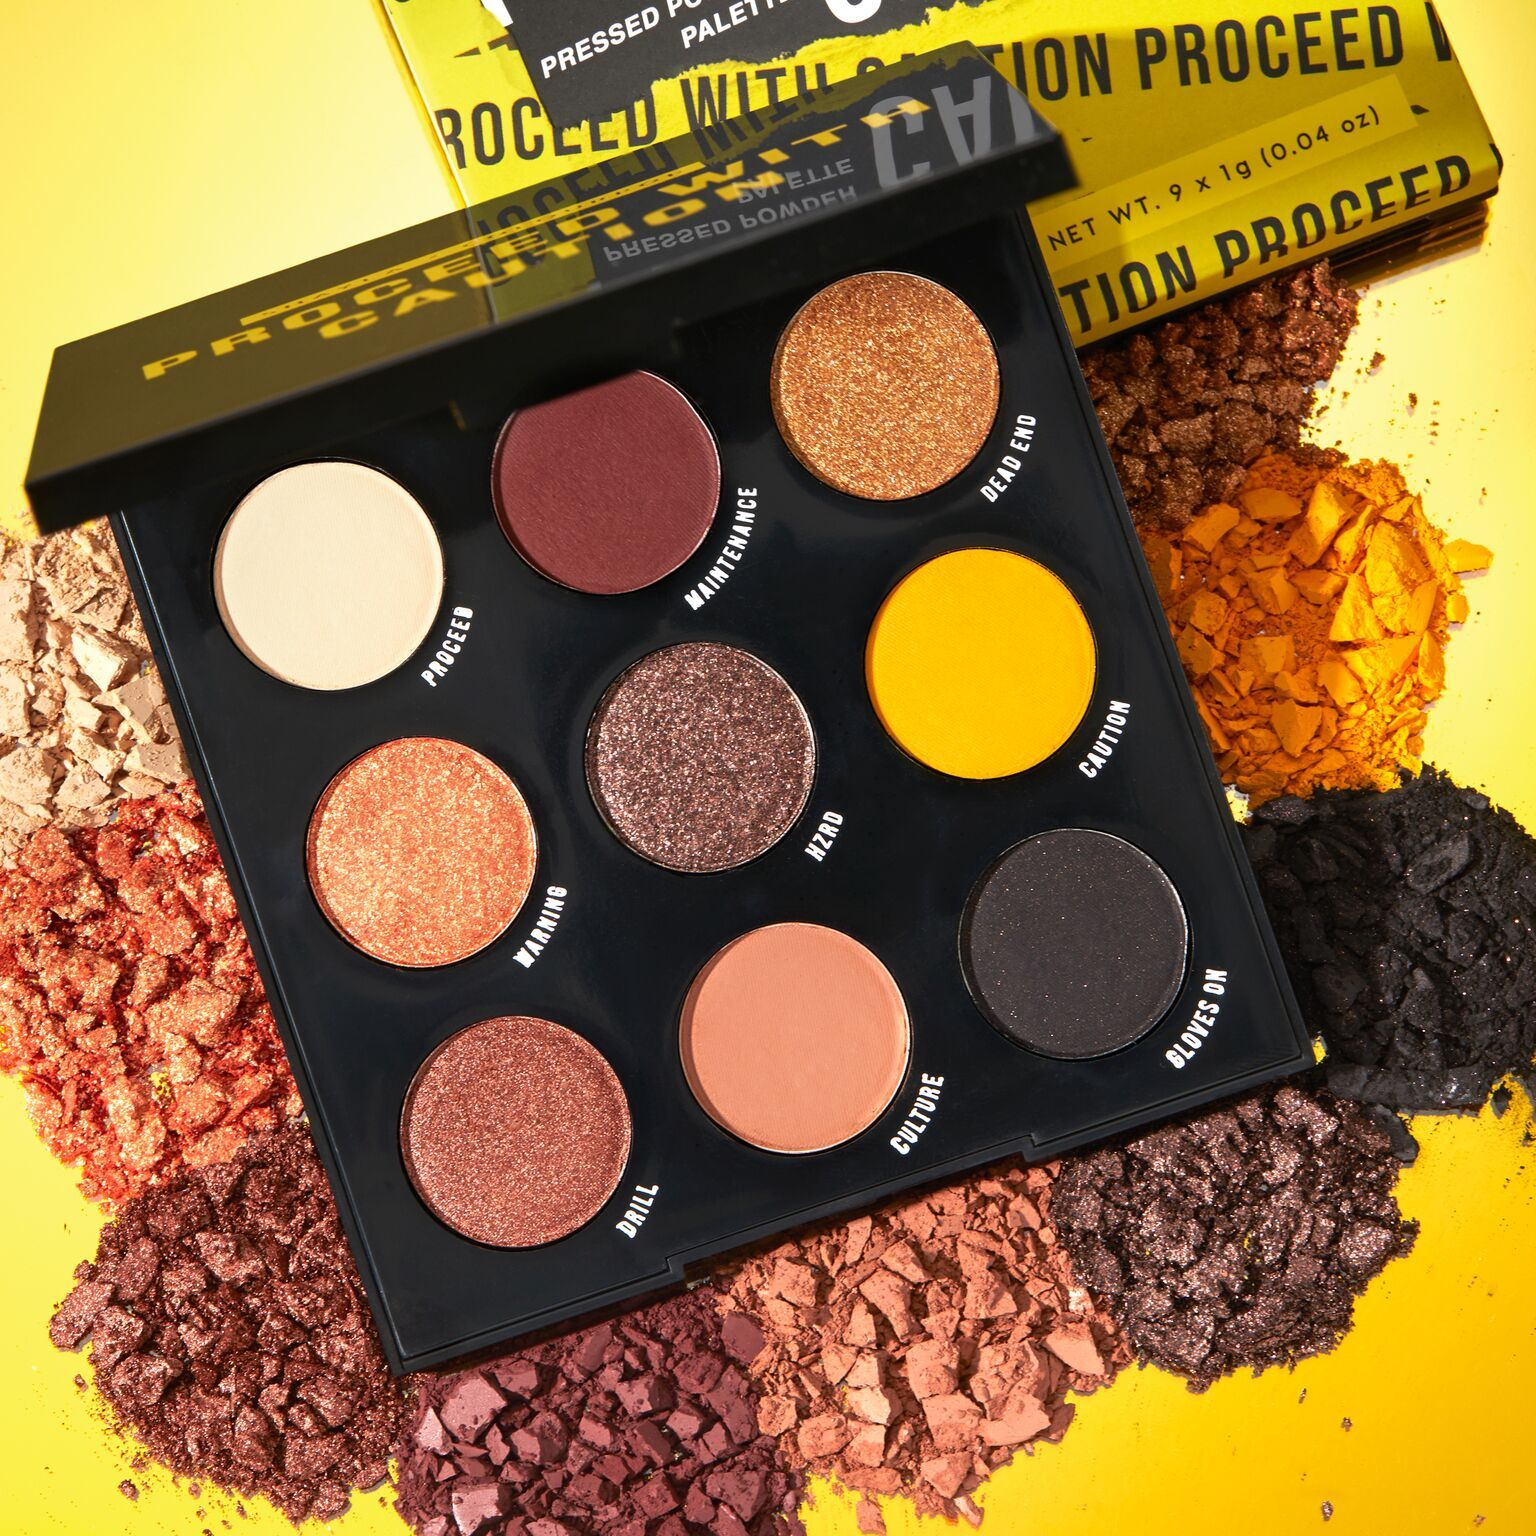 Proceed With Caution Palette 12 Shayla Proceed With Caution In